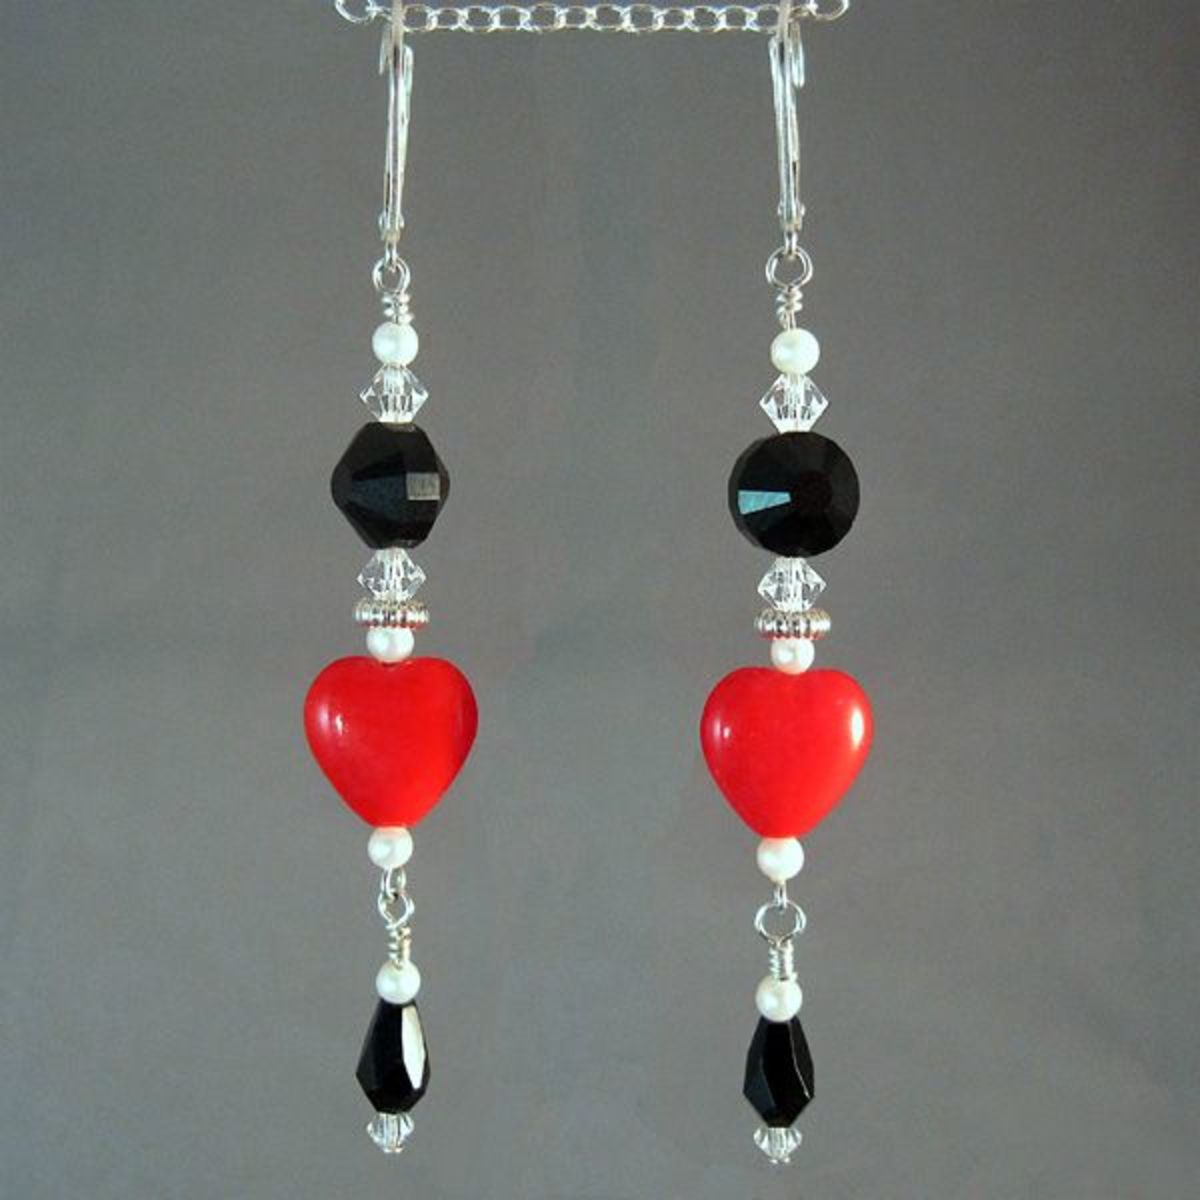 Romantic Queen of Hearts Earrings by Margaret Schindel